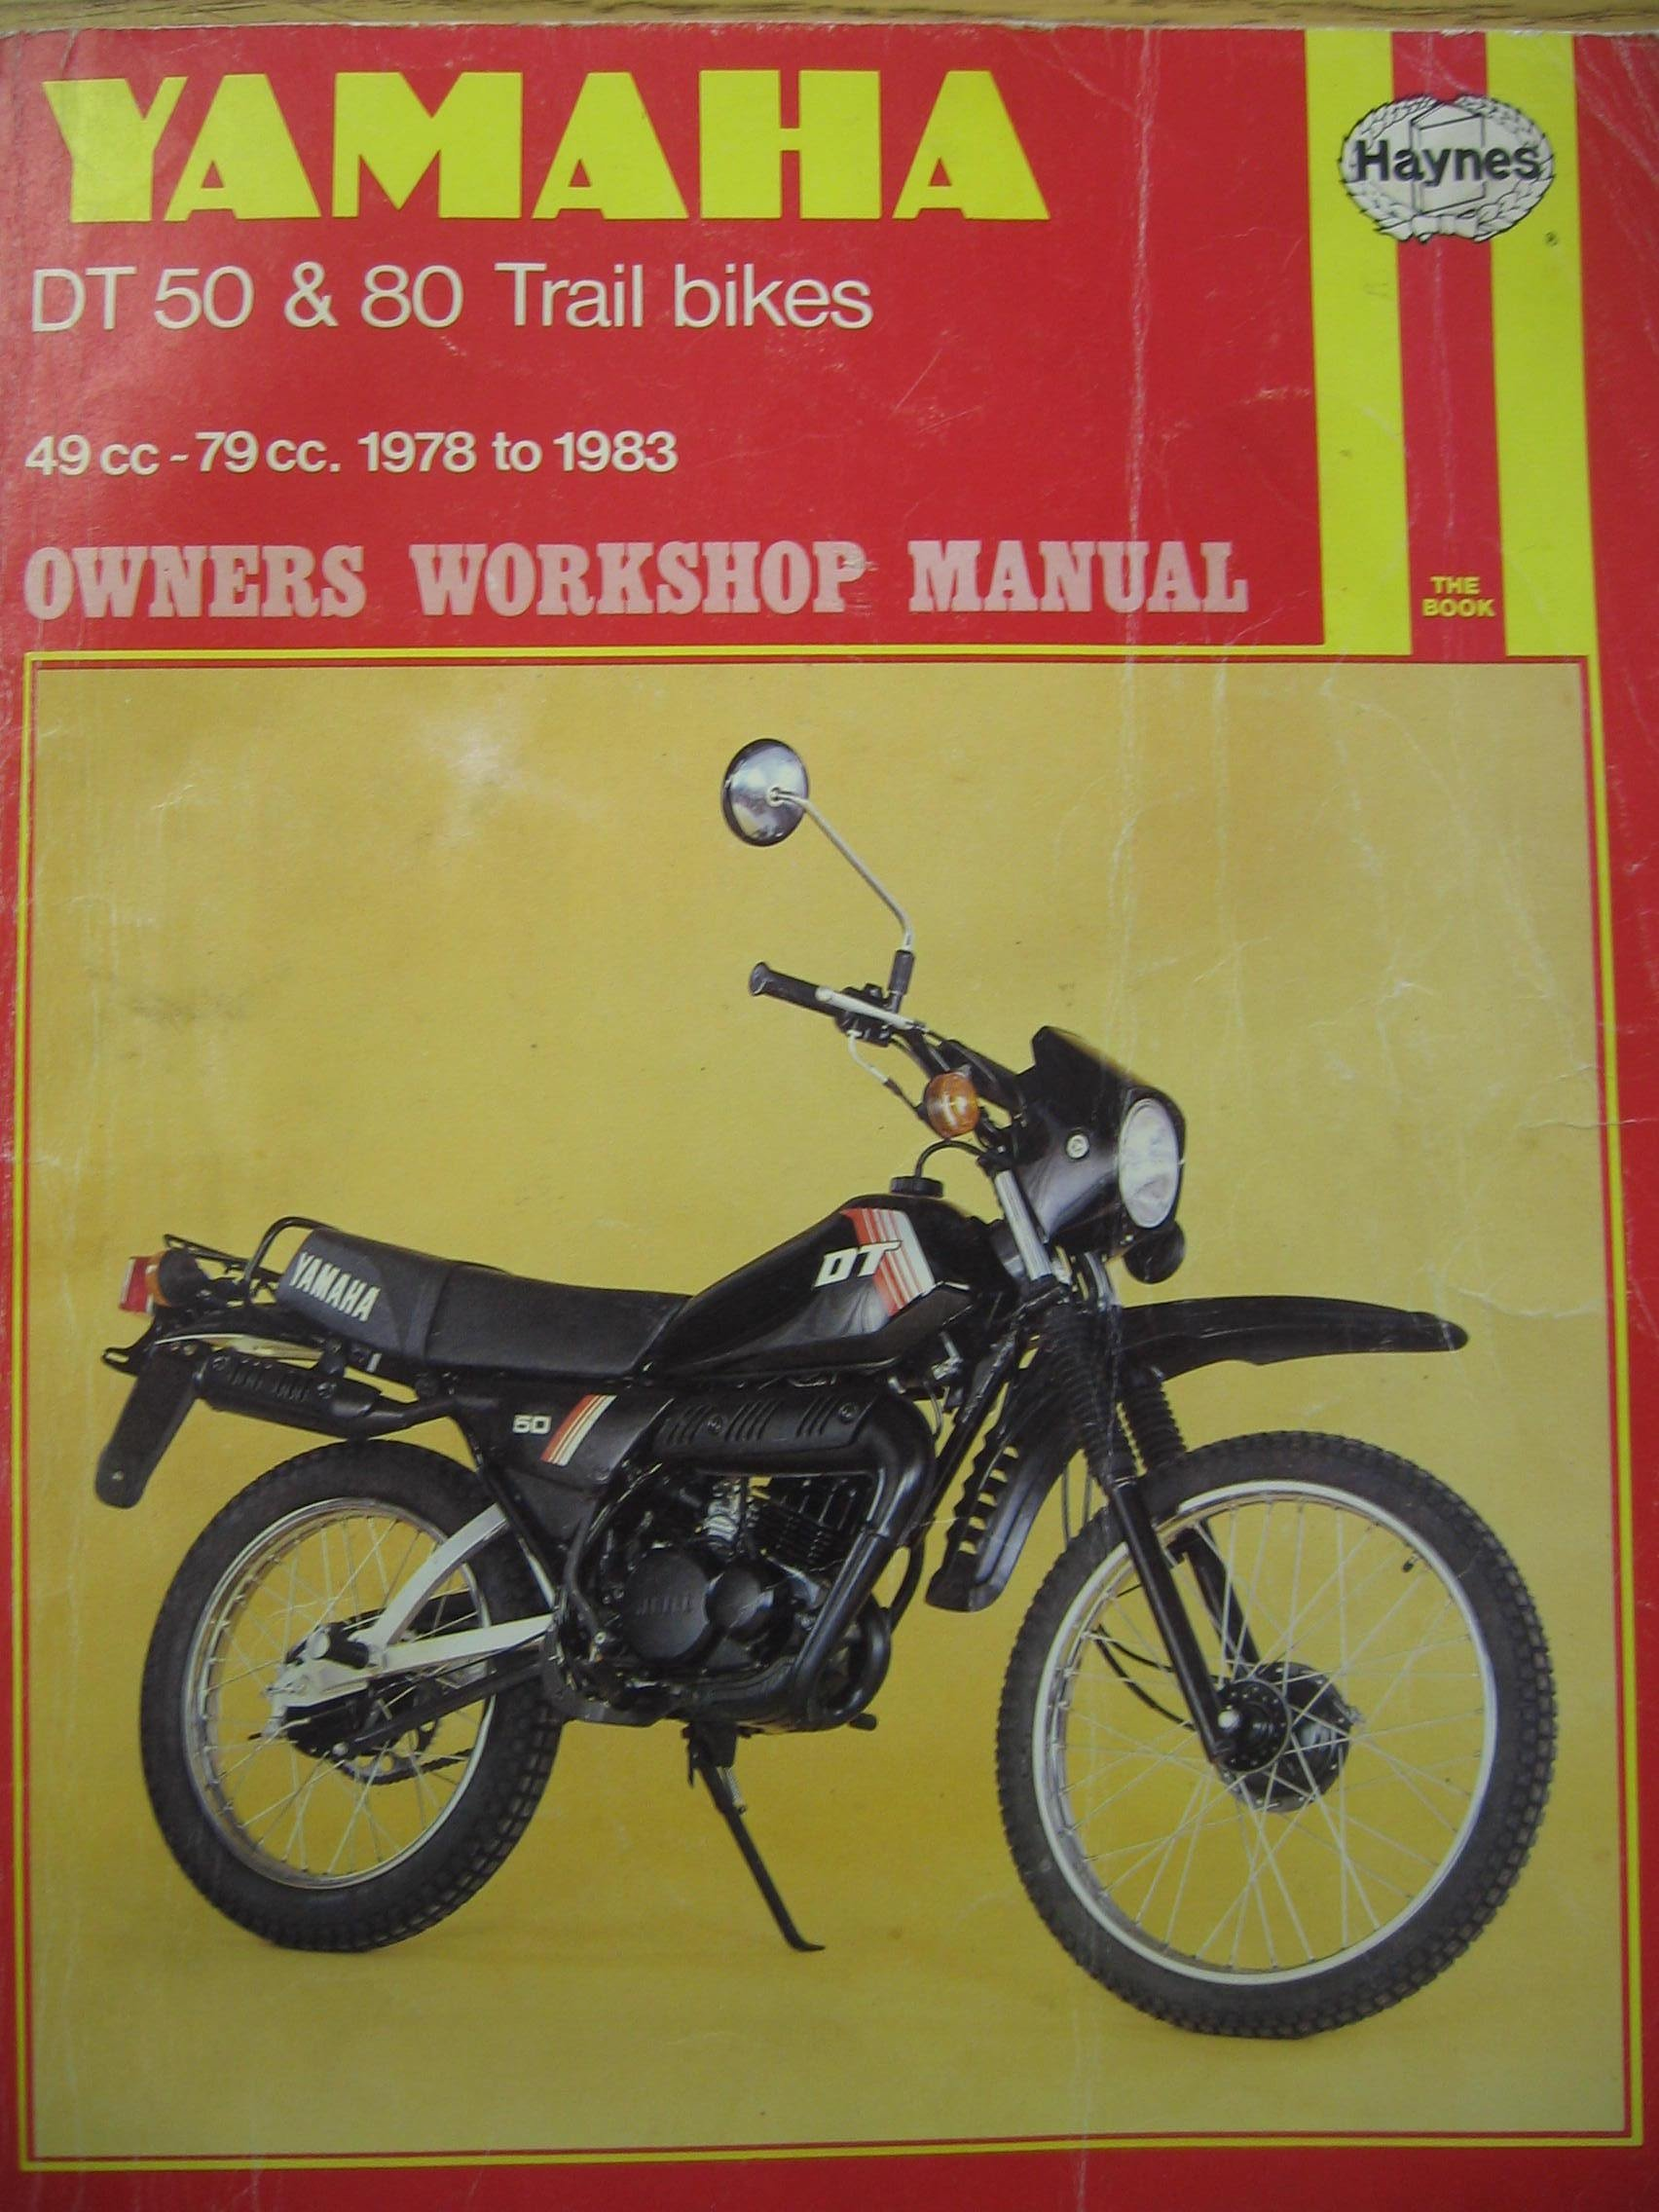 Yamaha DT50 and 80 Trail Bikes Owner's Workshop Manual: Chris Rogers:  9780856968006: Amazon.com: Books